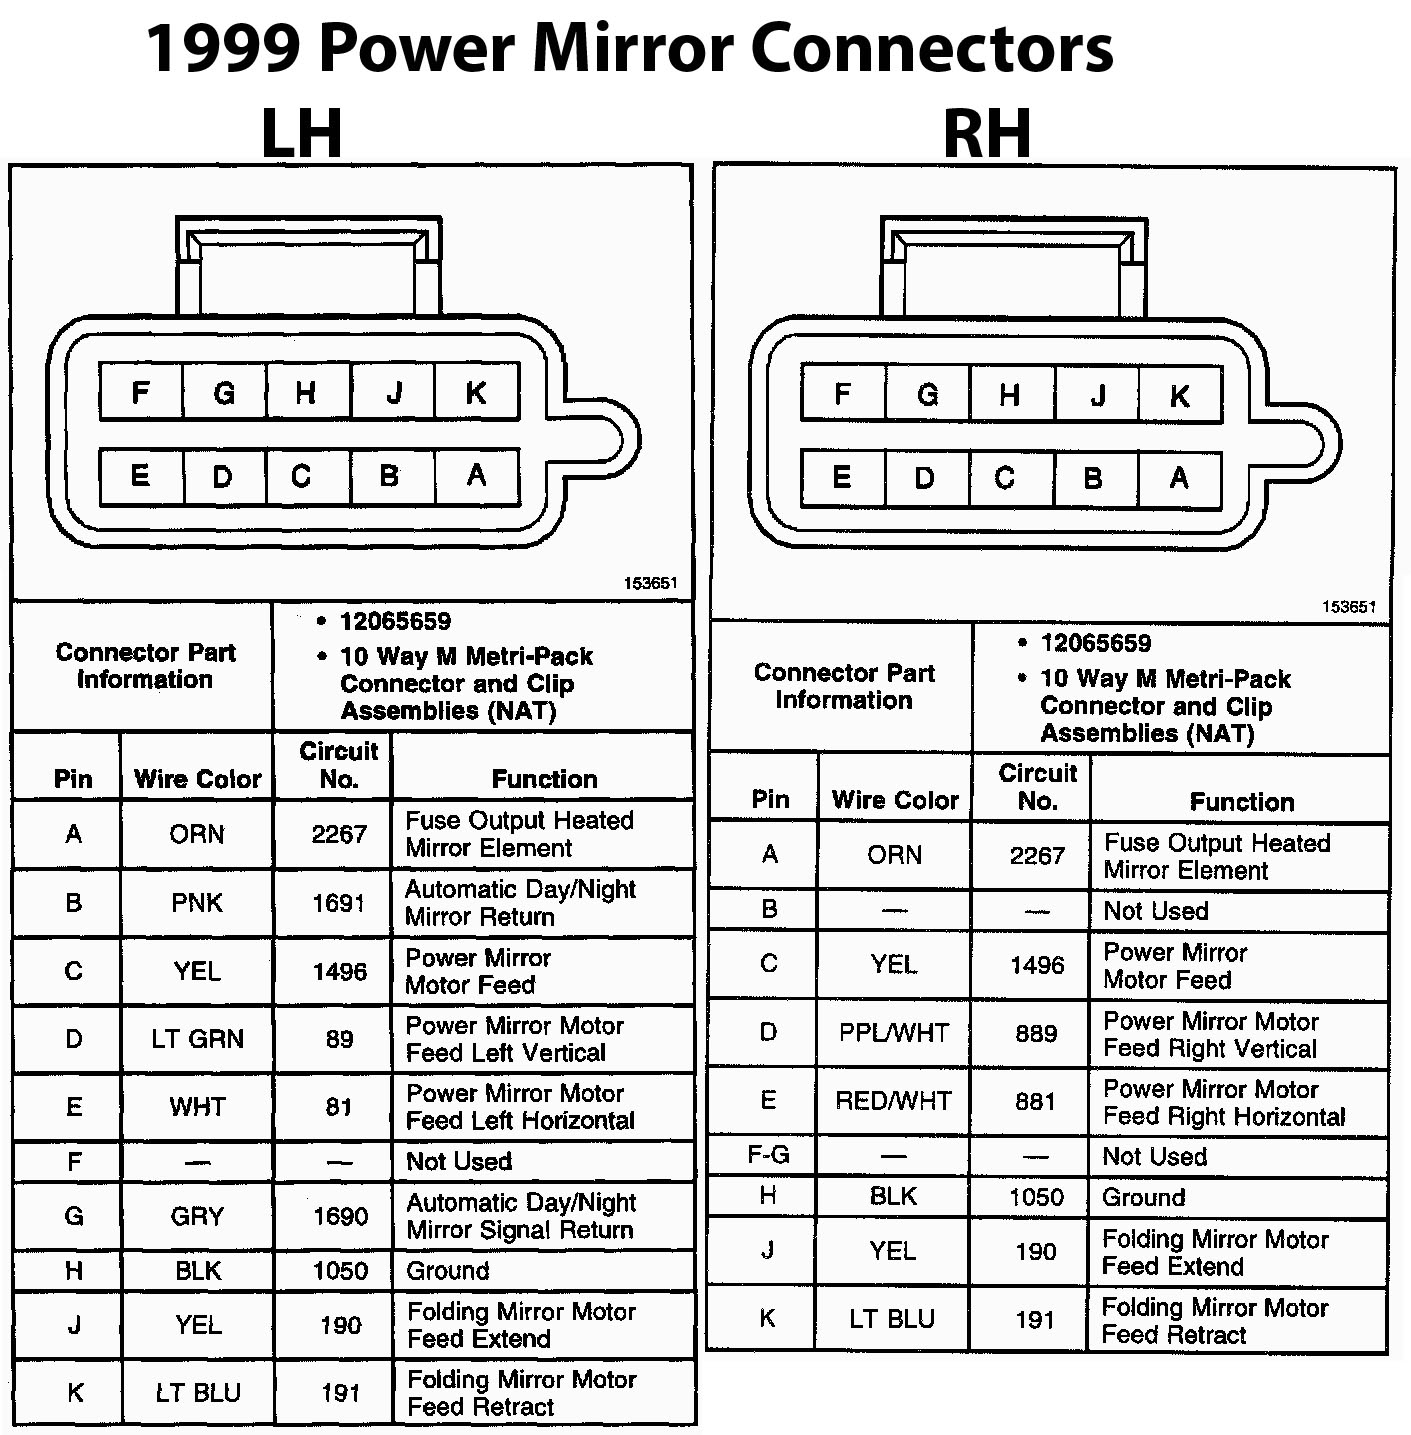 Chevy Silverado Wiring Diagram Tow Mirrors 2004 2500 | Manual E-Books - Chevy Tow Mirror Wiring Diagram